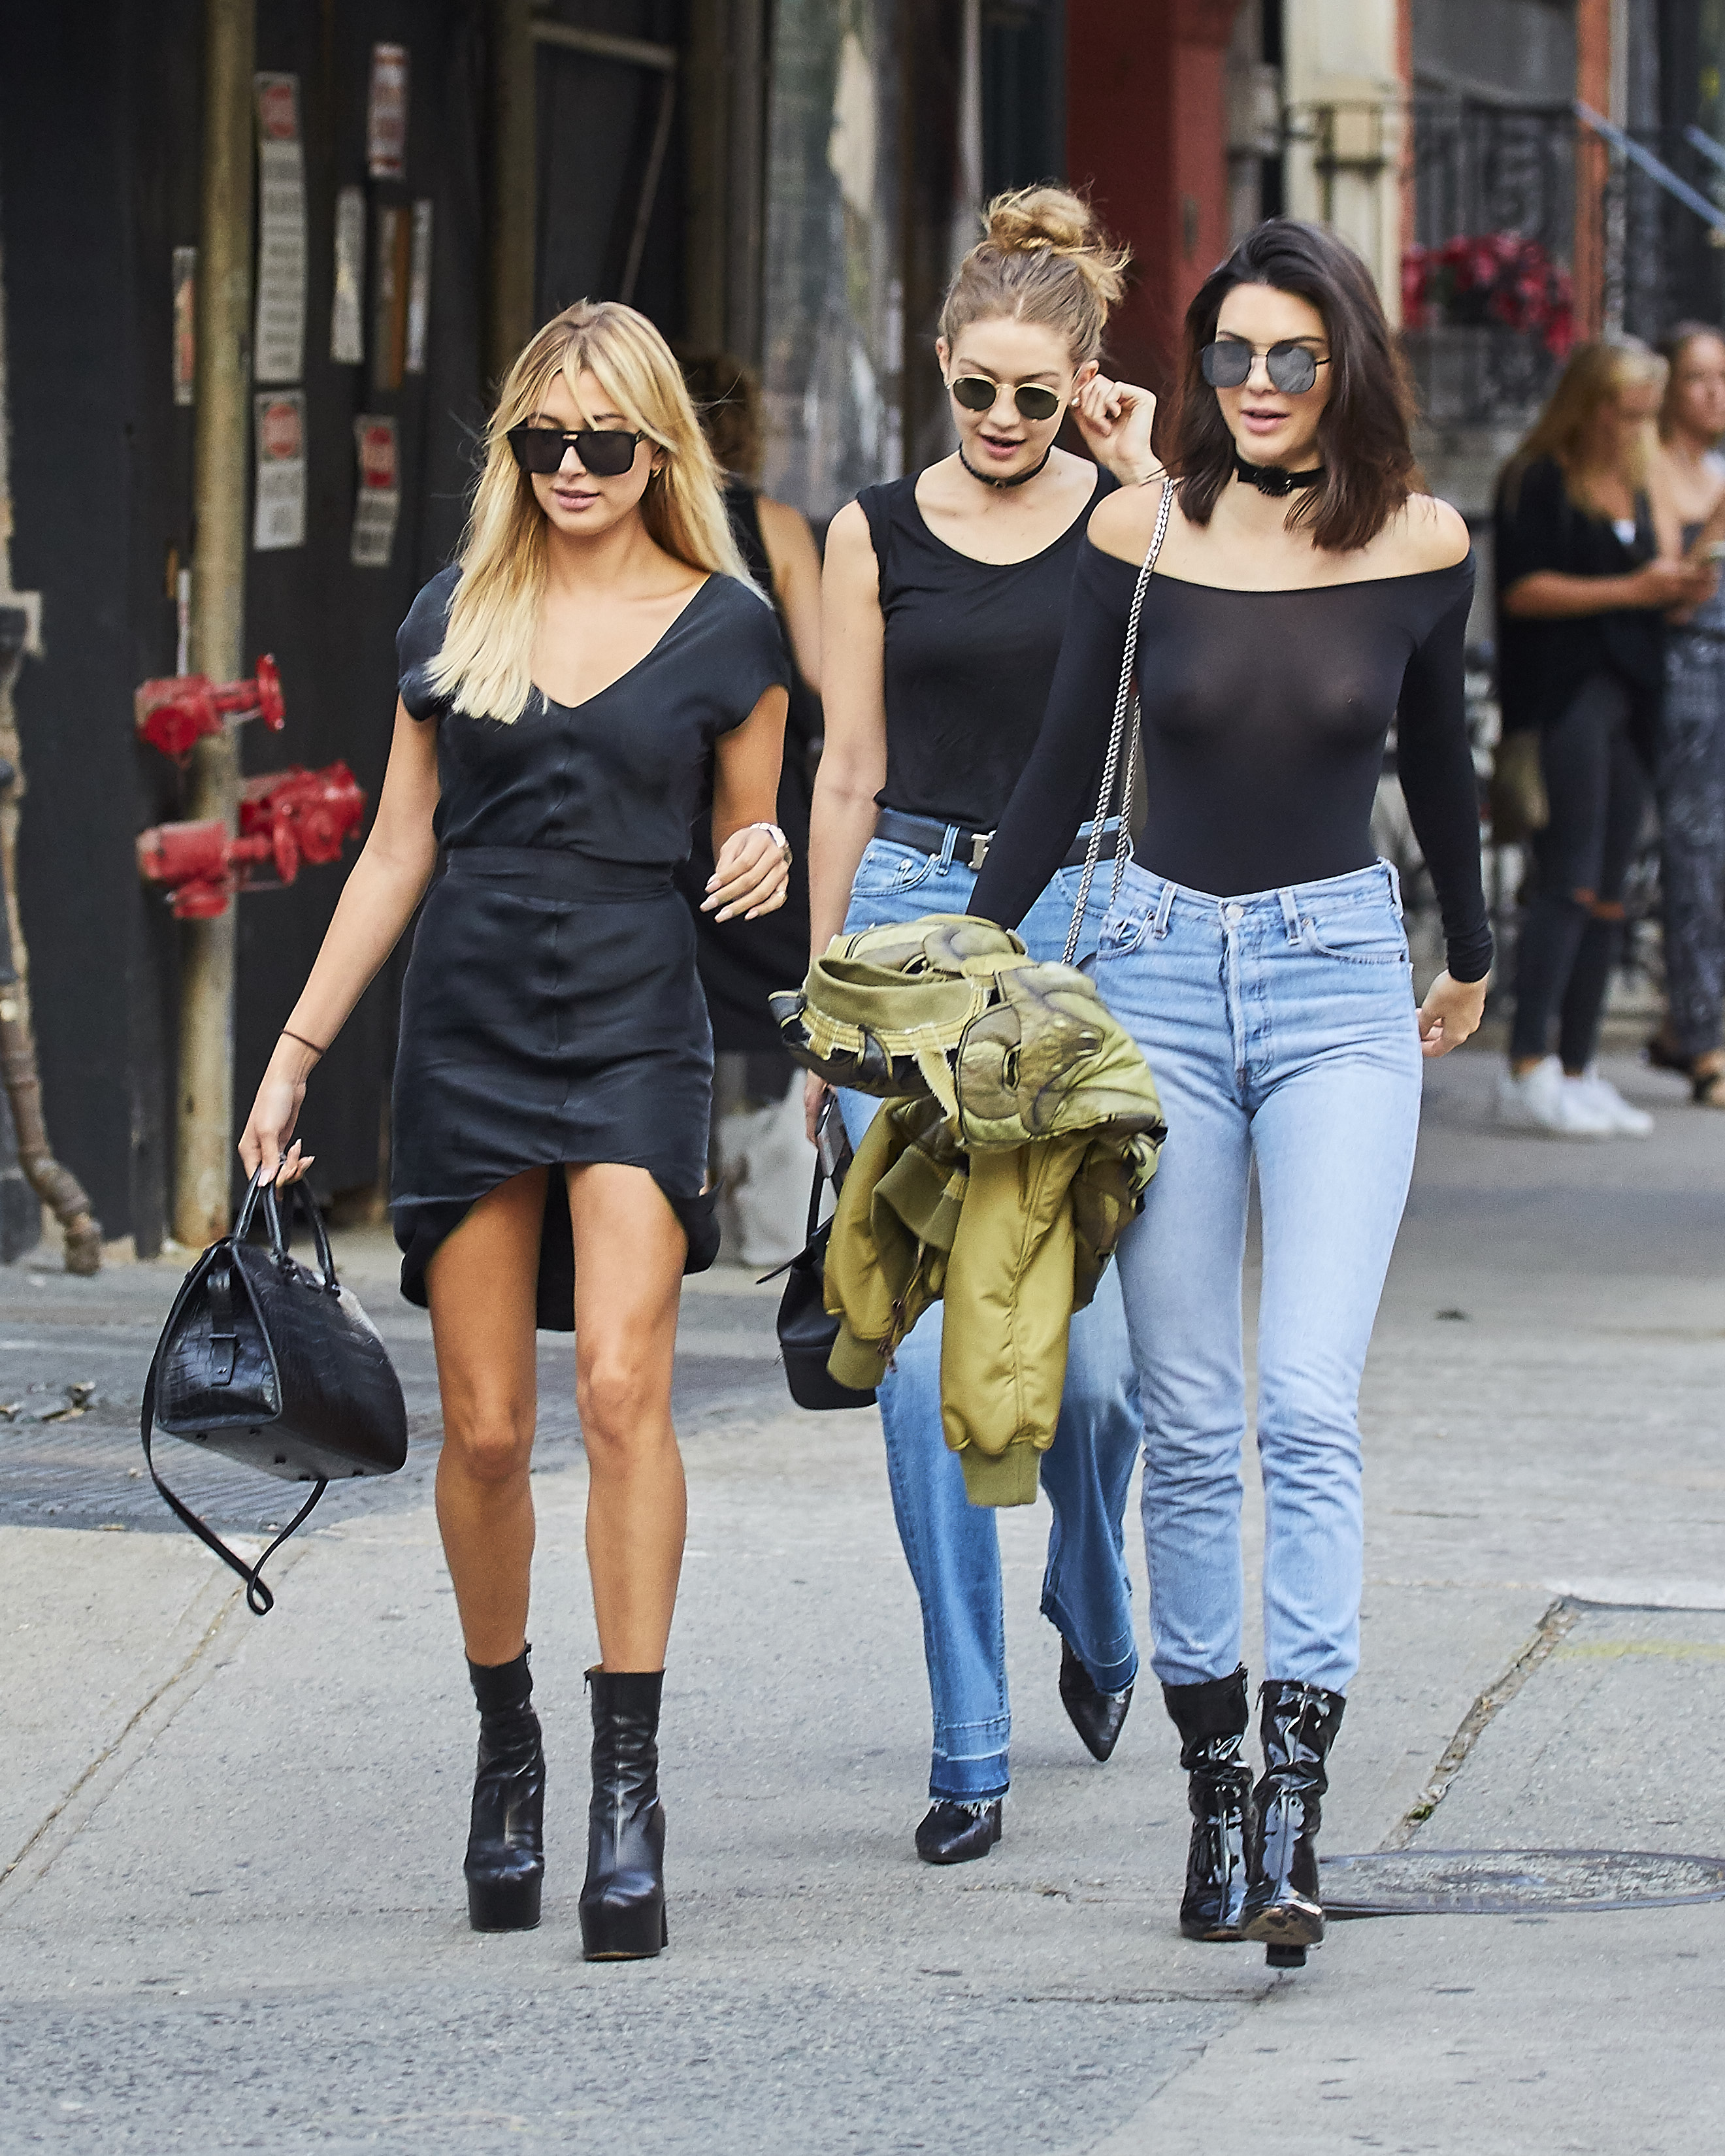 Gigi Hadid and Hailey Baldwin spotted going for a walk in the East Village neighborhood of NYC Pictured: Gigi Hadid, Hailey Baldwin, Kendall Jenner Ref: SPL1305739 210616 Picture by: J. Webber / Splash News Splash News and Pictures Los Angeles:310-821-2666 New York: 212-619-2666 London: 870-934-2666 photodesk@splashnews.com